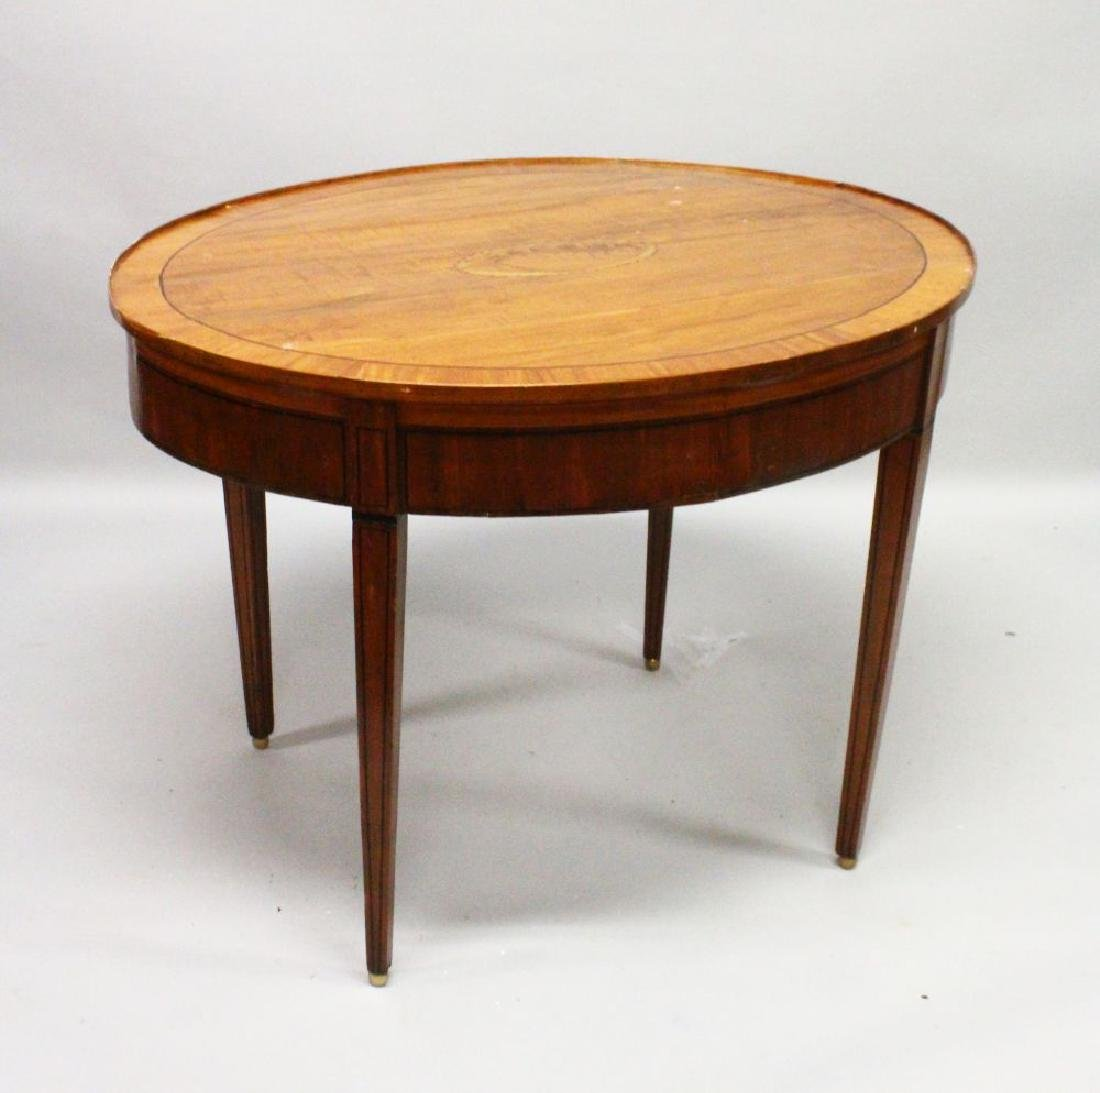 A SHERATON REVIVAL SATINWOOD OVAL TABLE, crossbanded